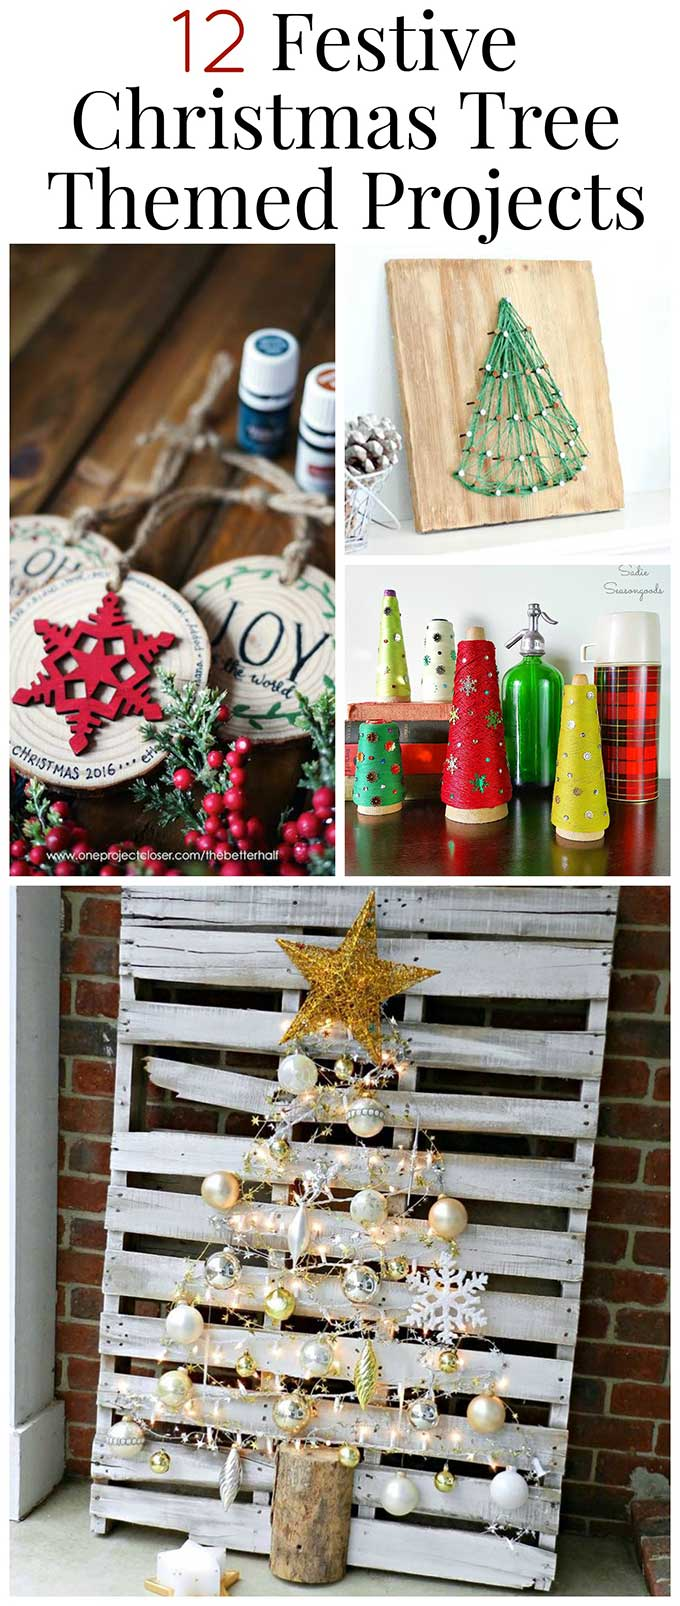 12 Christmas tree themed DIY projects for the holiday season. #ChristmasDecor #holidaydecor #christmasdiy